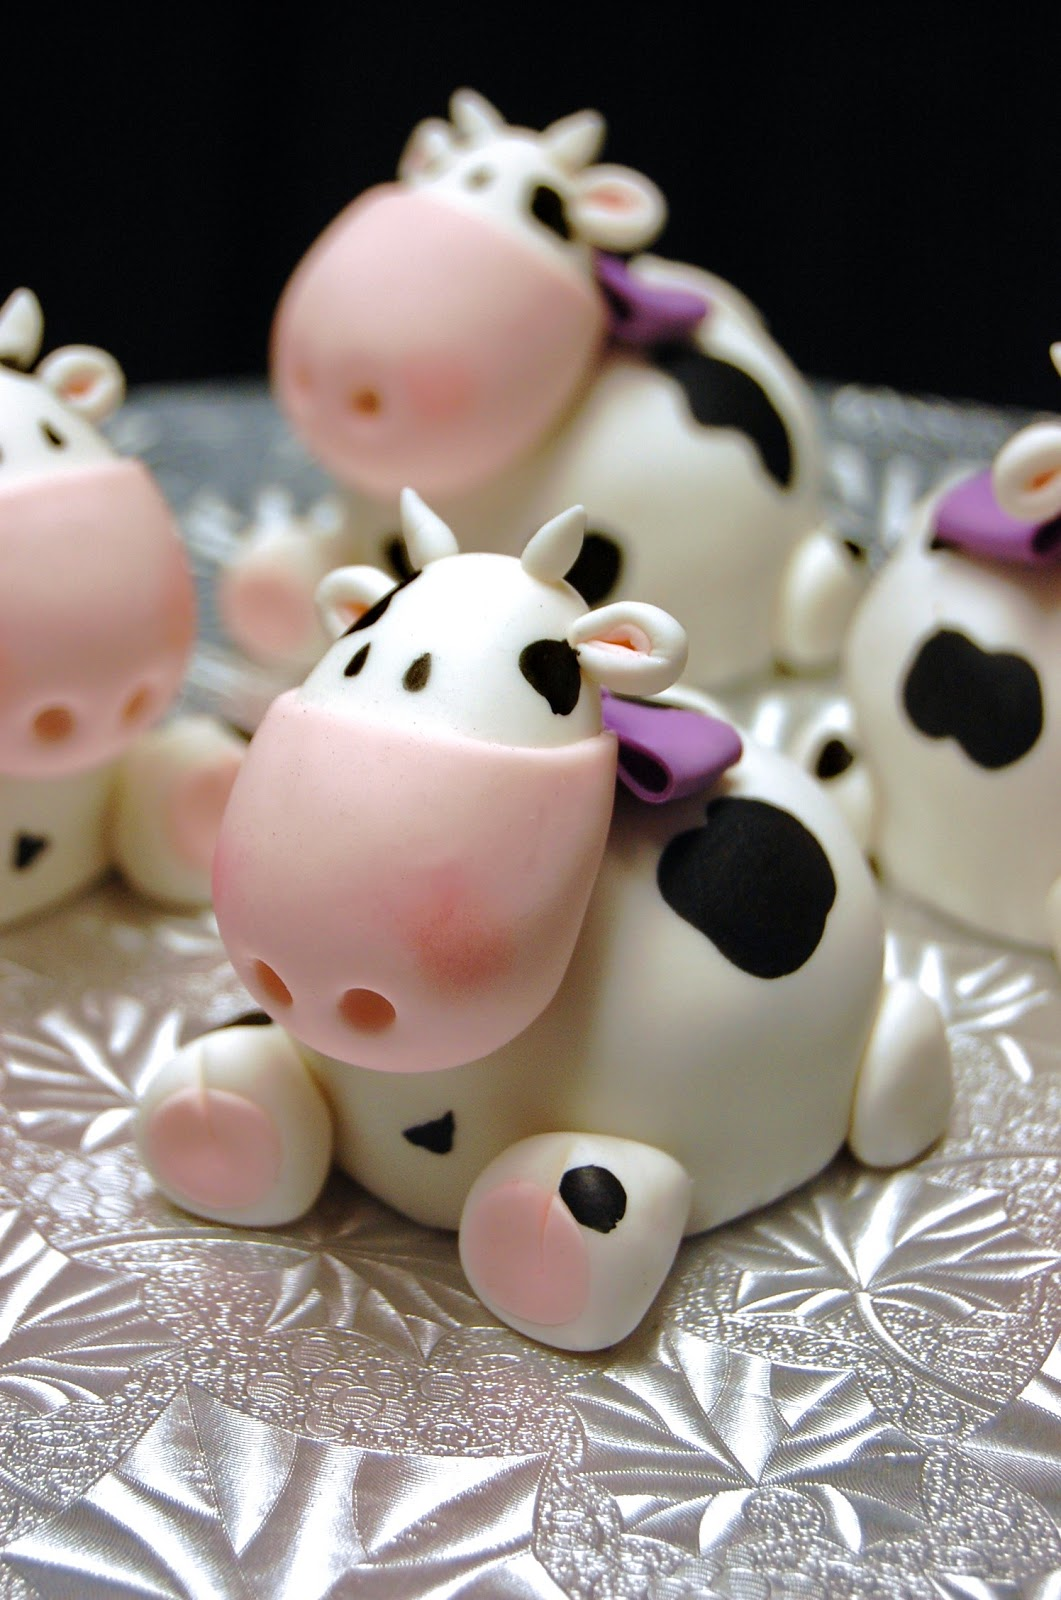 Baby Cow Cakes These Mini Were Inspired By My Beautiful Daughter Each Cake Is The Size Of A Standard Cupcake Enjoy